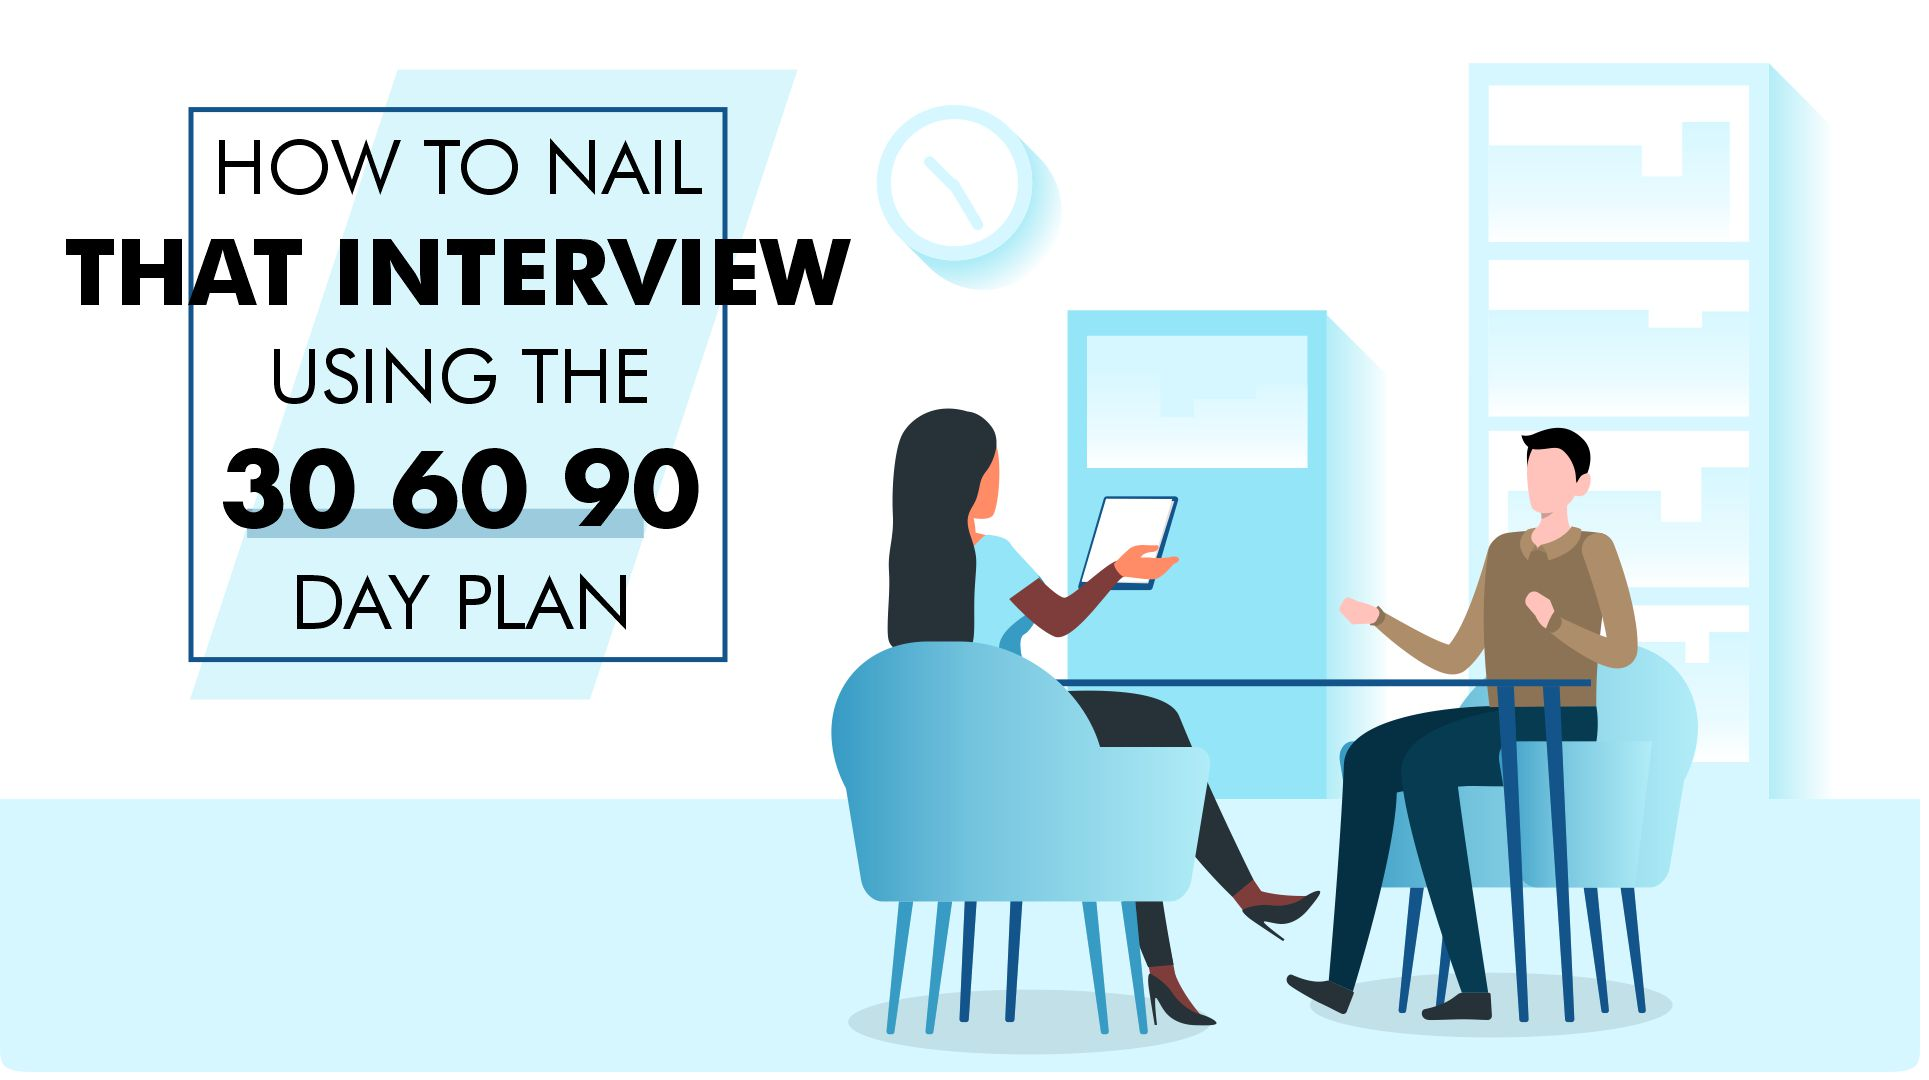 How To Nail That Interview Using The 30 60 90 Day Plan (With Templates)